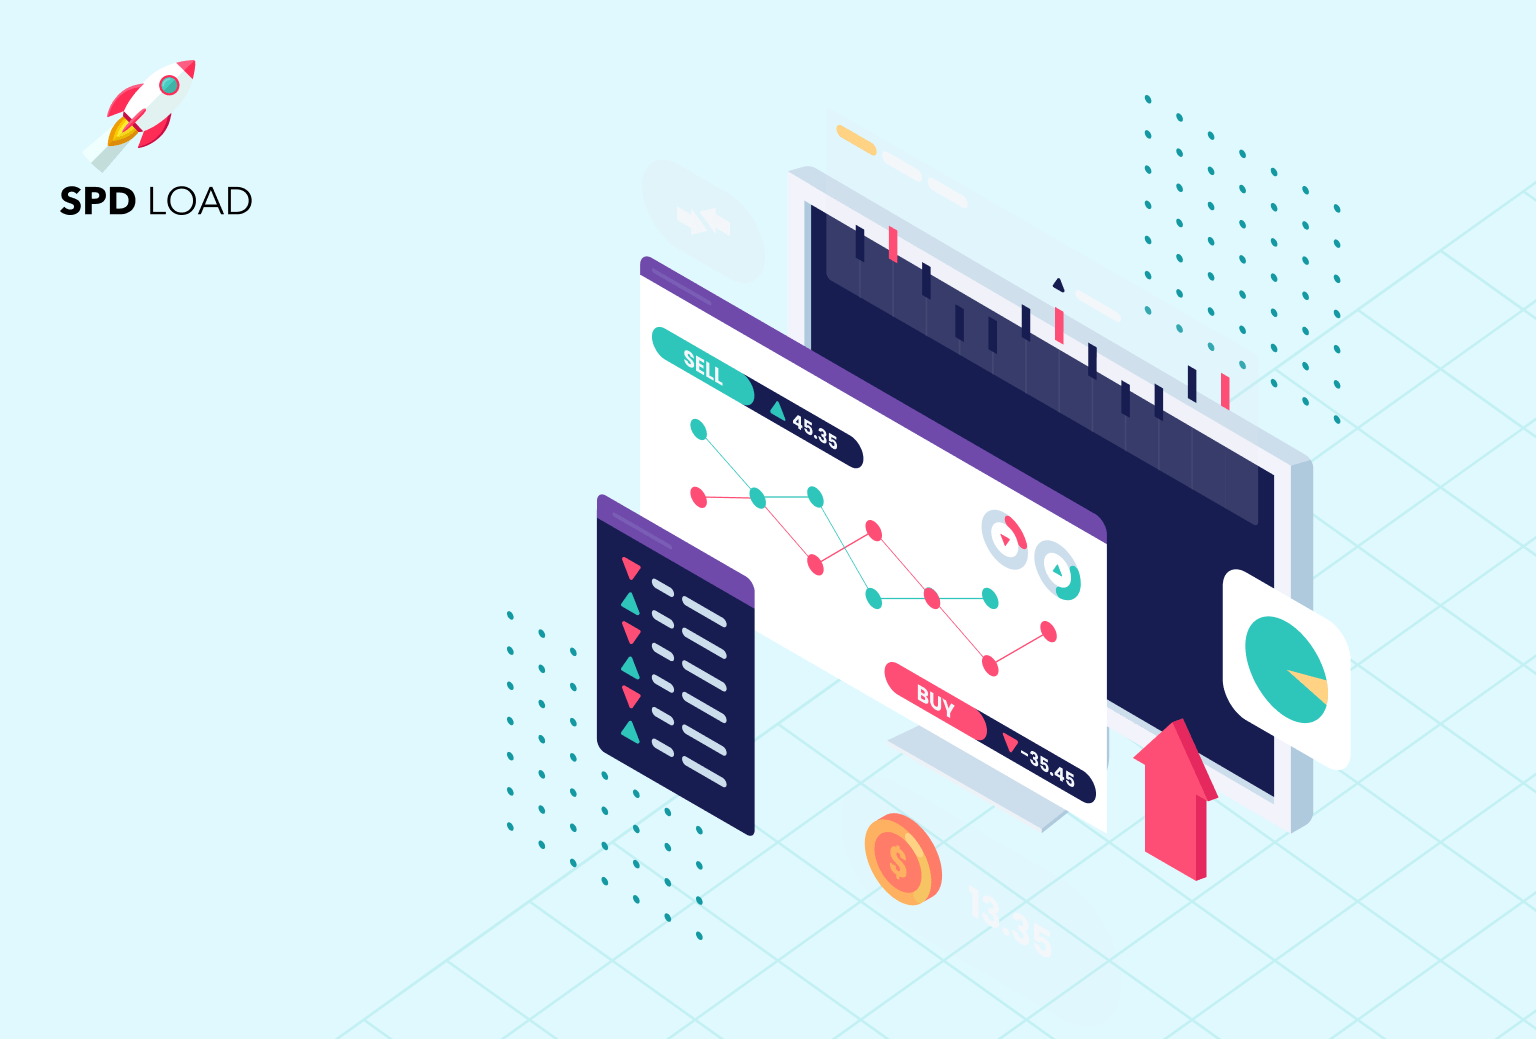 SpdLoad presents an in-depth guide about how to build a trading platform